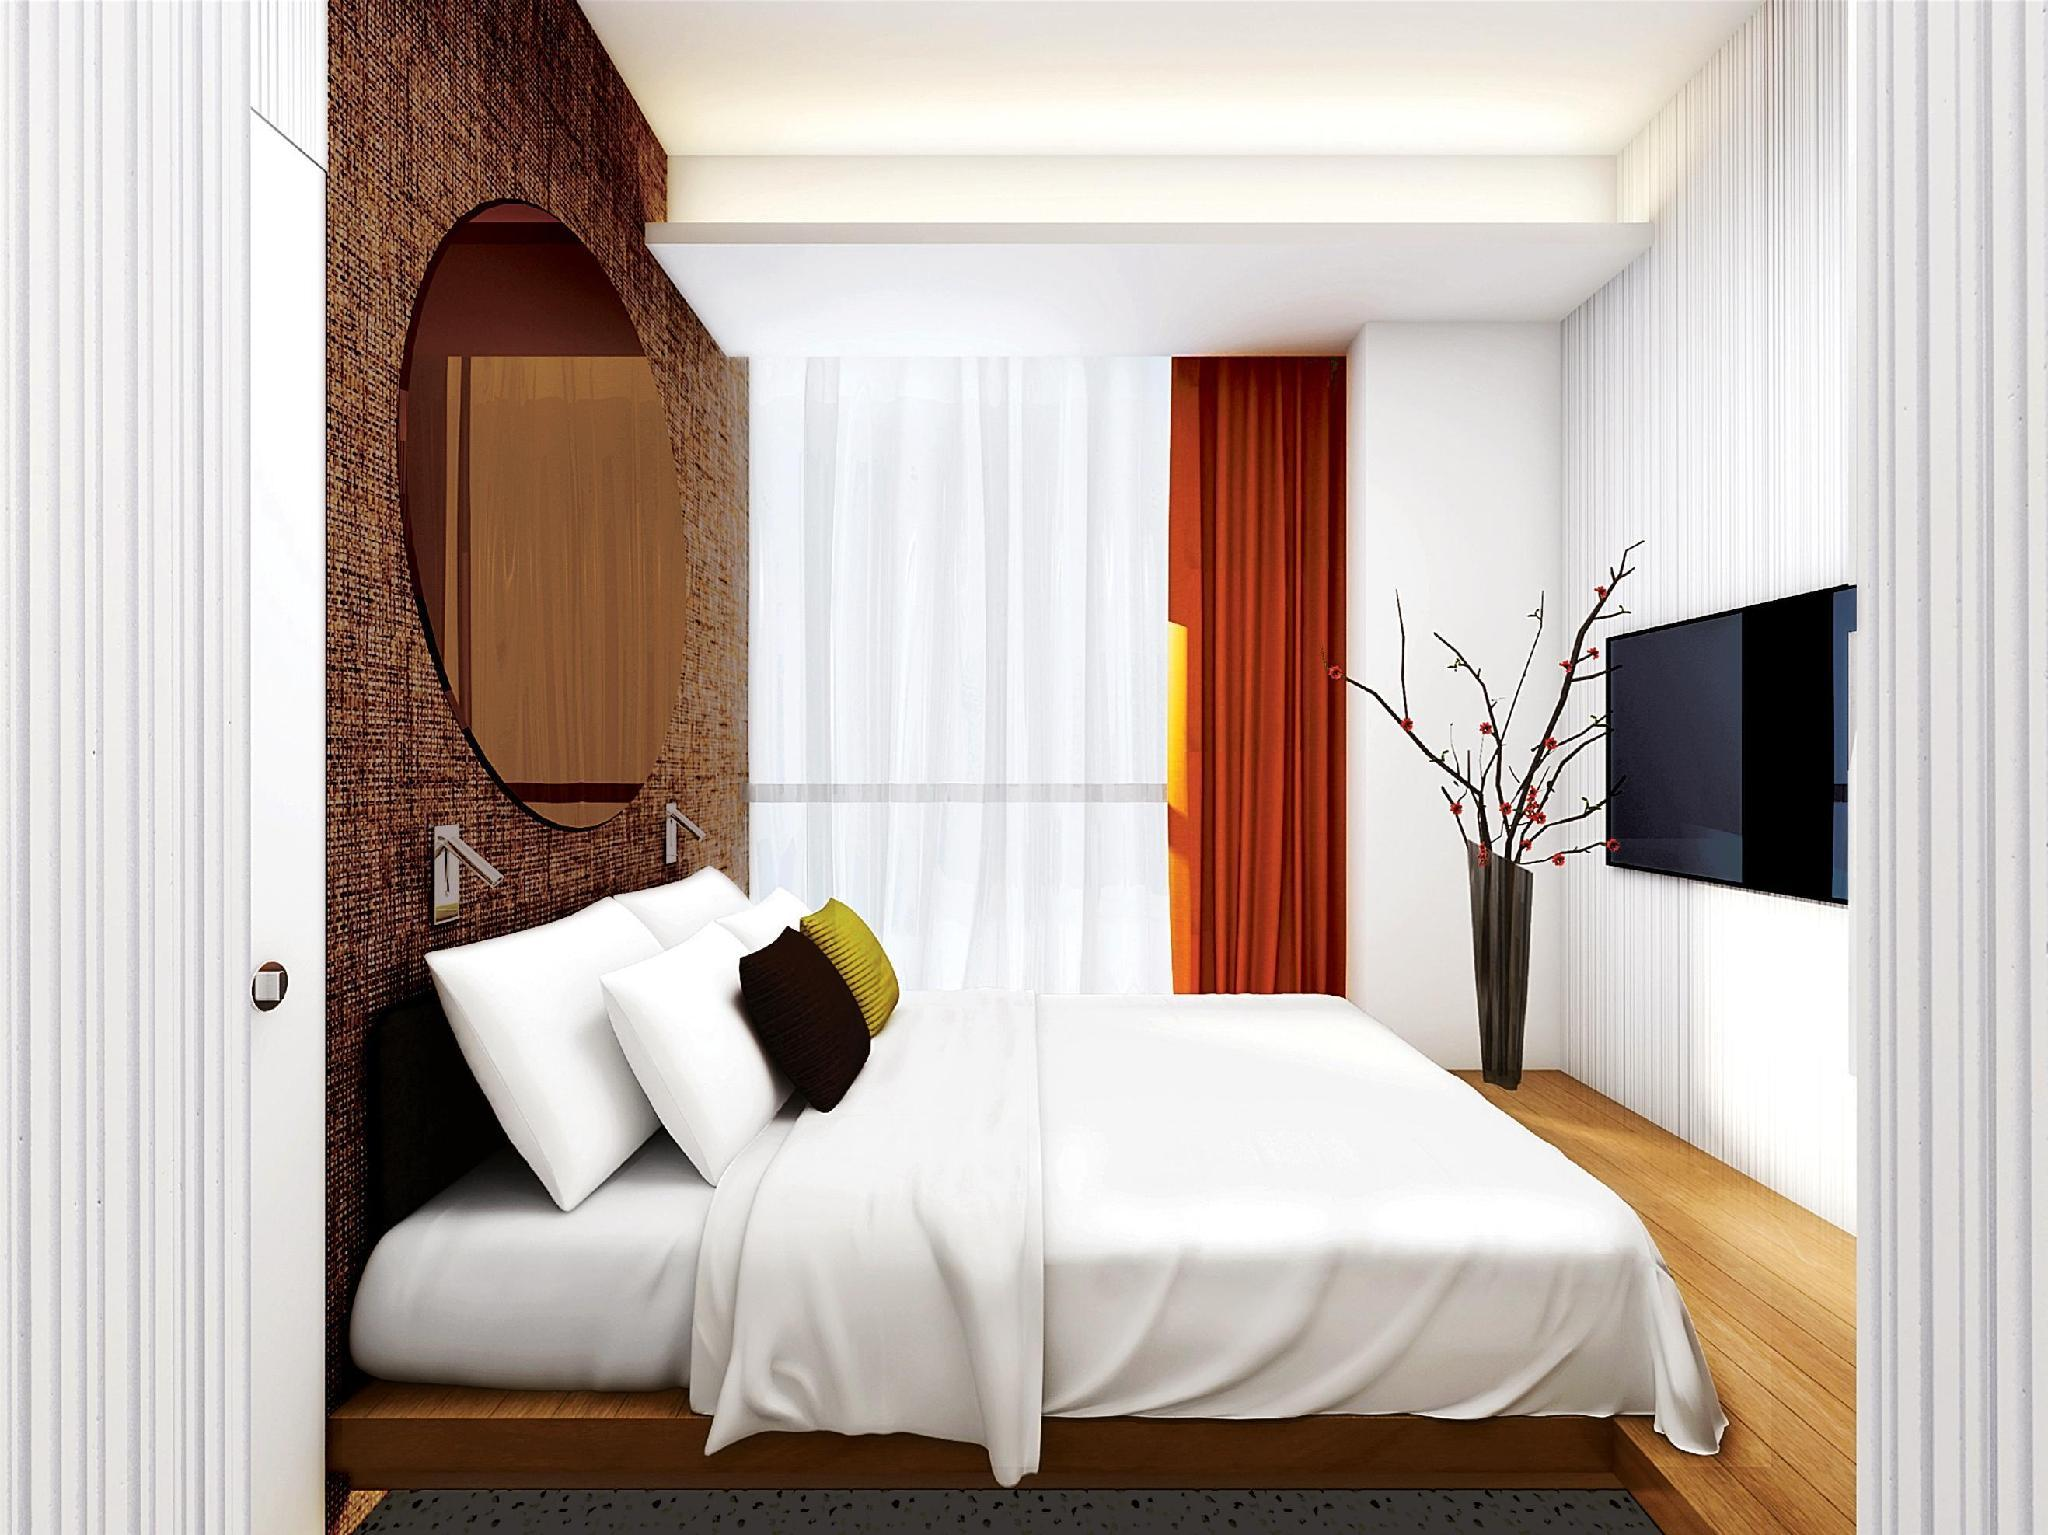 Ovolo 286 Queen's Road Central Hotel हाँग काँग - अतिथि कक्ष